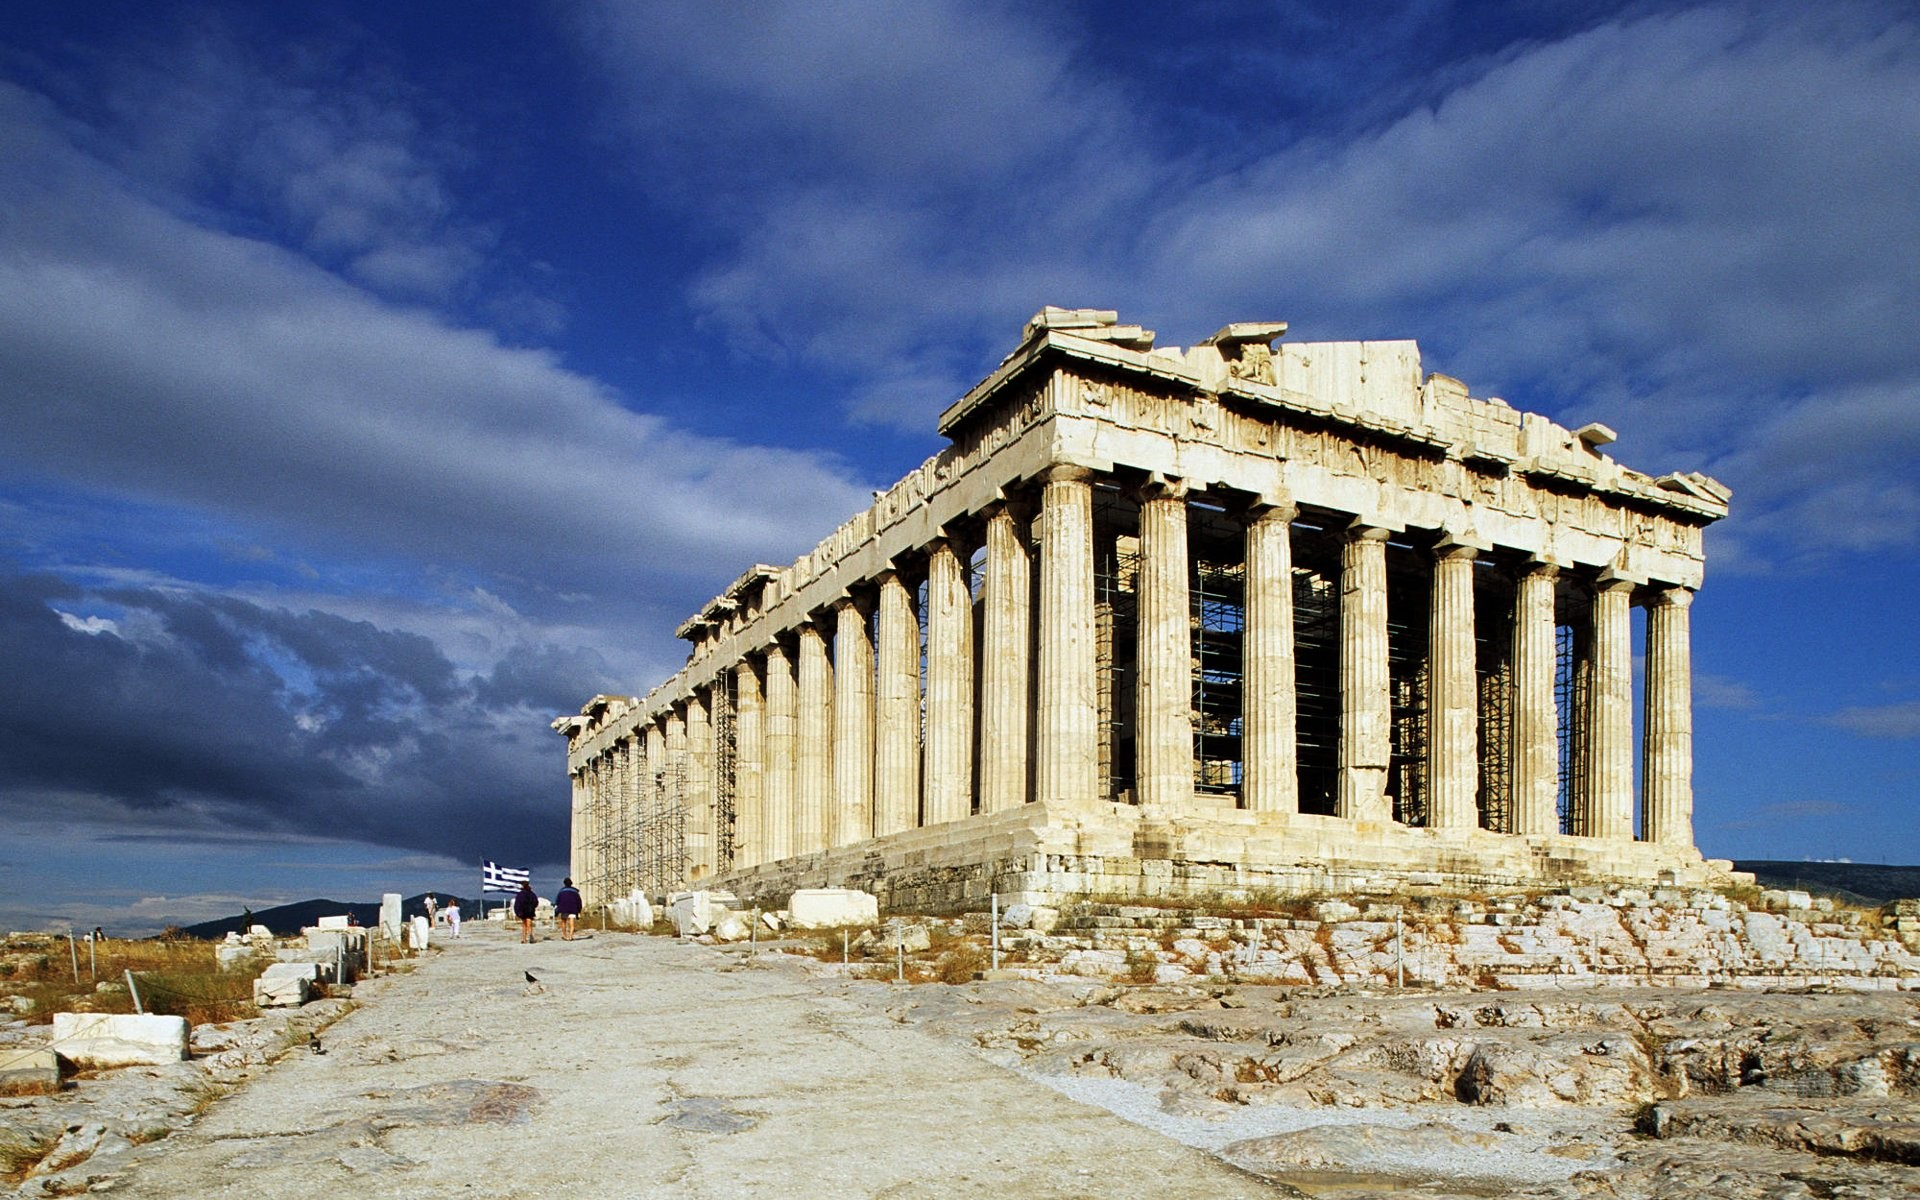 3D Laser Technology to Digitally Preserve The World's Greatest Sites, CyArk's Scanned Parthenon Project. Image Courtesy of toptravellists.net